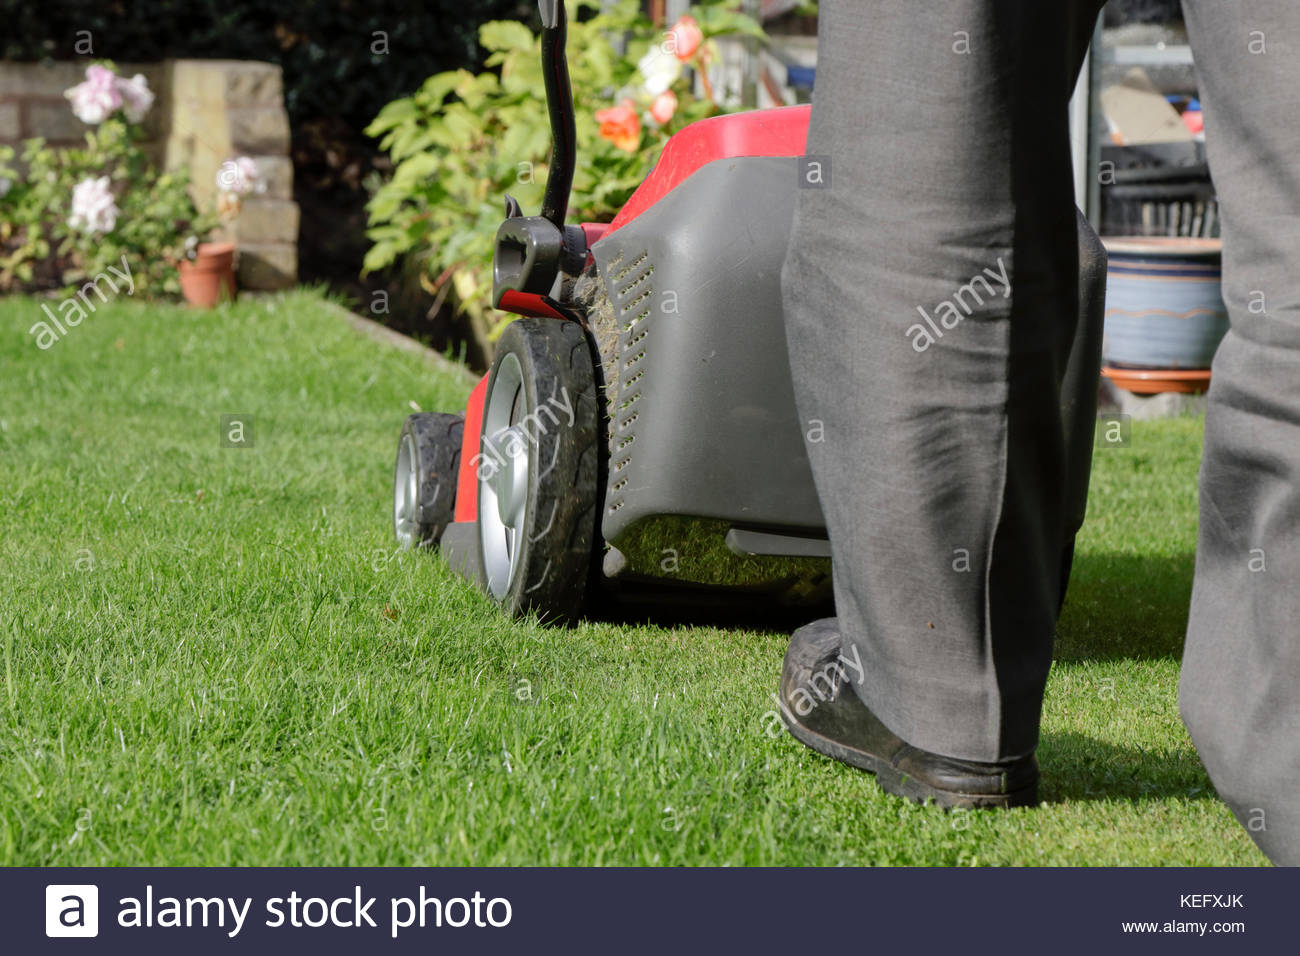 Grass Cutting With Electric Lawn Mower, UK - Stock Image